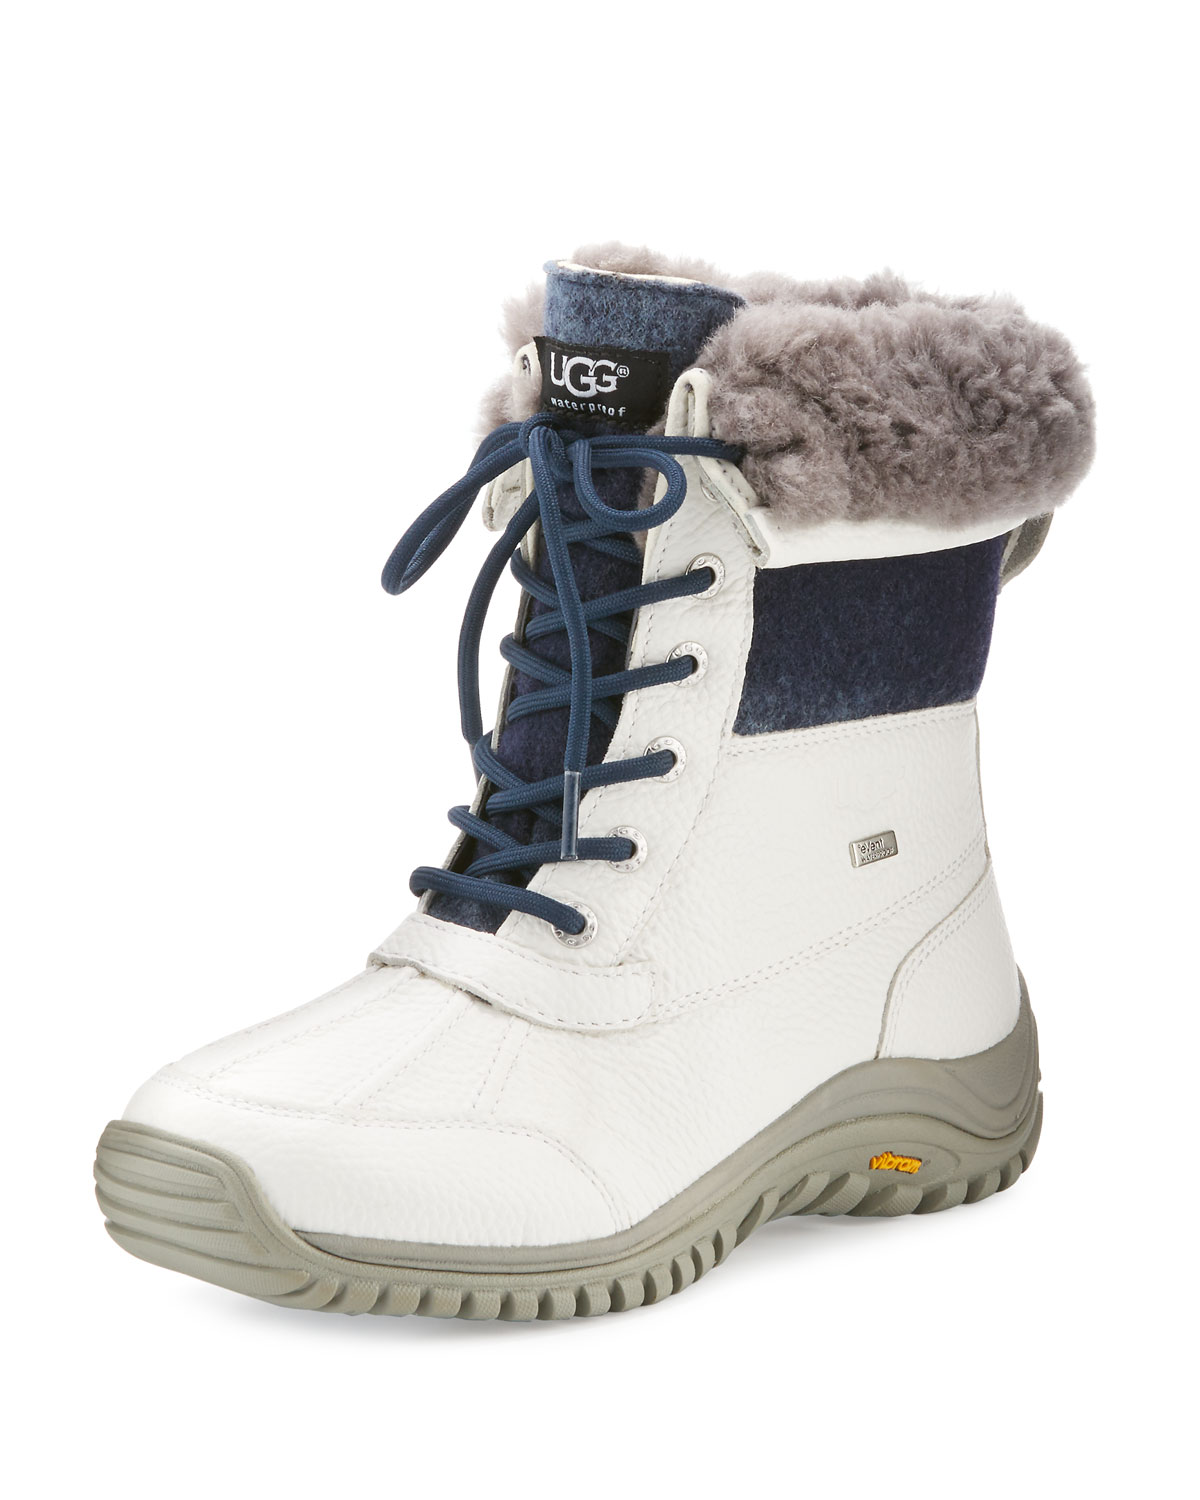 0670f2fb868 Adirondack II Leather Hiker Boot, White